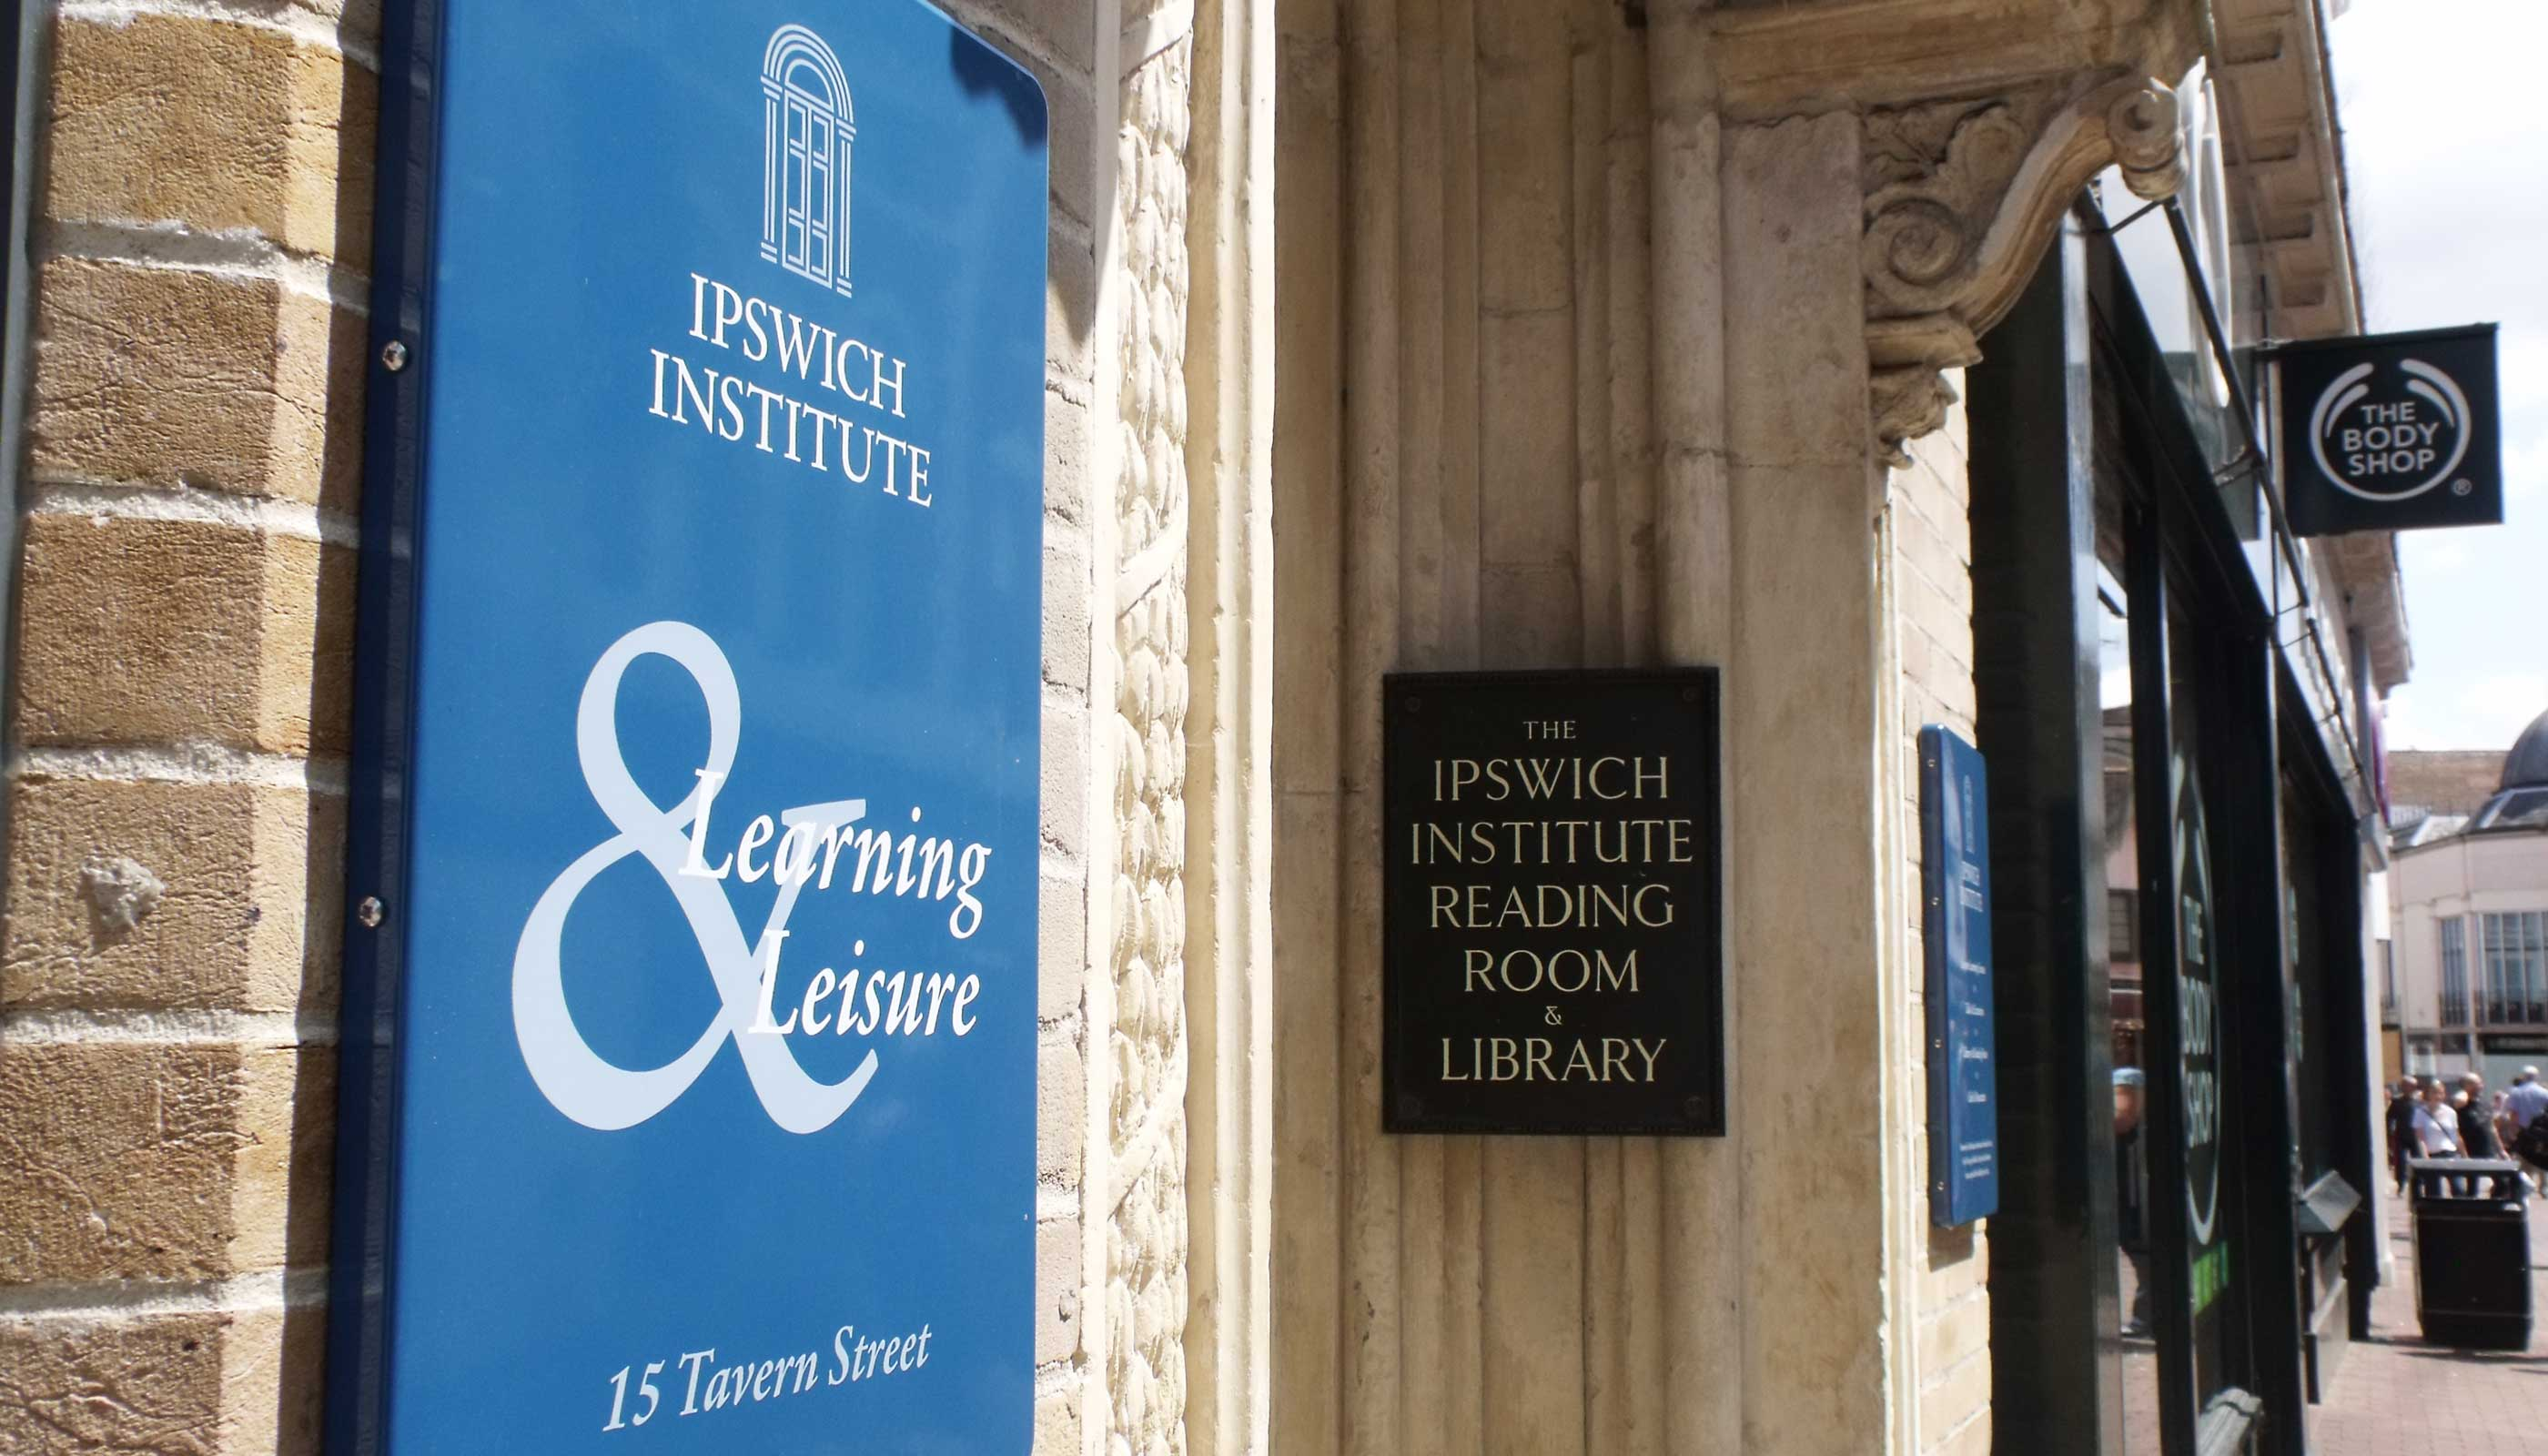 Signage design and production for Ipswich Institute.